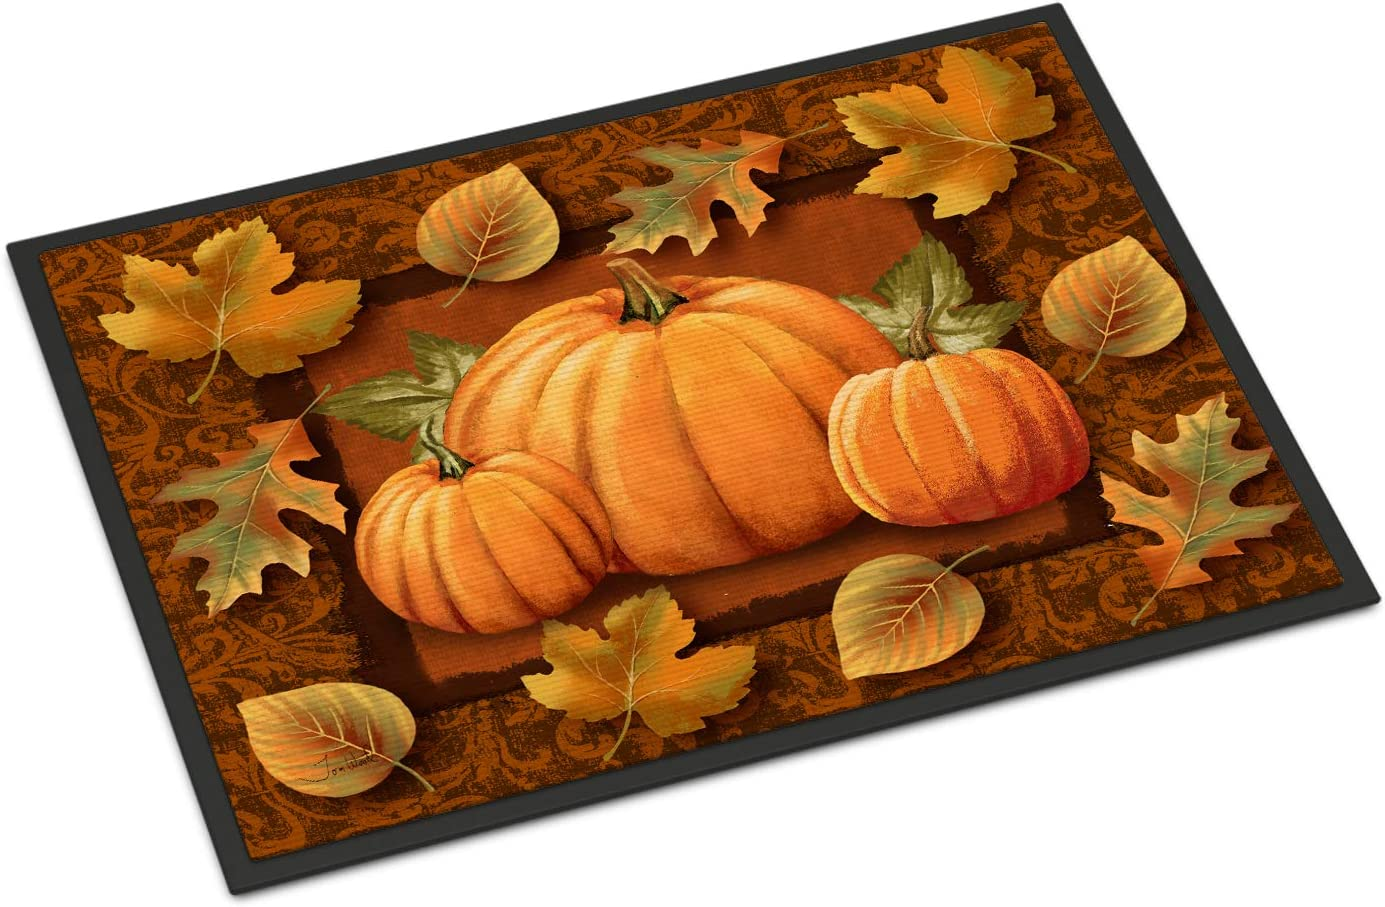 Amazon Com Caroline S Treasures Ptw2009mat Pumpkins And Fall Leaves Indoor Or Outdoor Mat 18x27 18h X 27w Multicolor Caroline S Treasures Home Kitchen